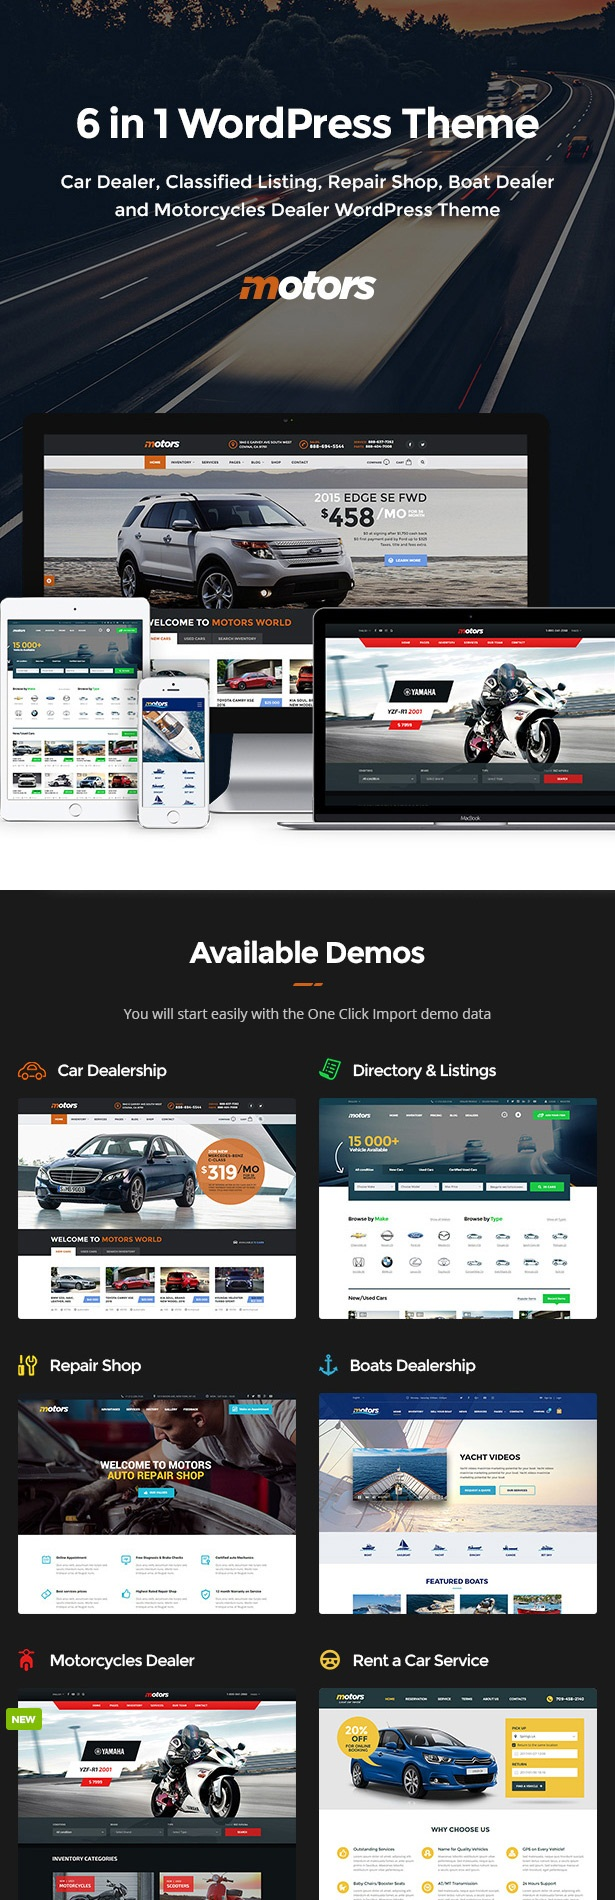 Motors - Ultimate classified add theme for WordPress